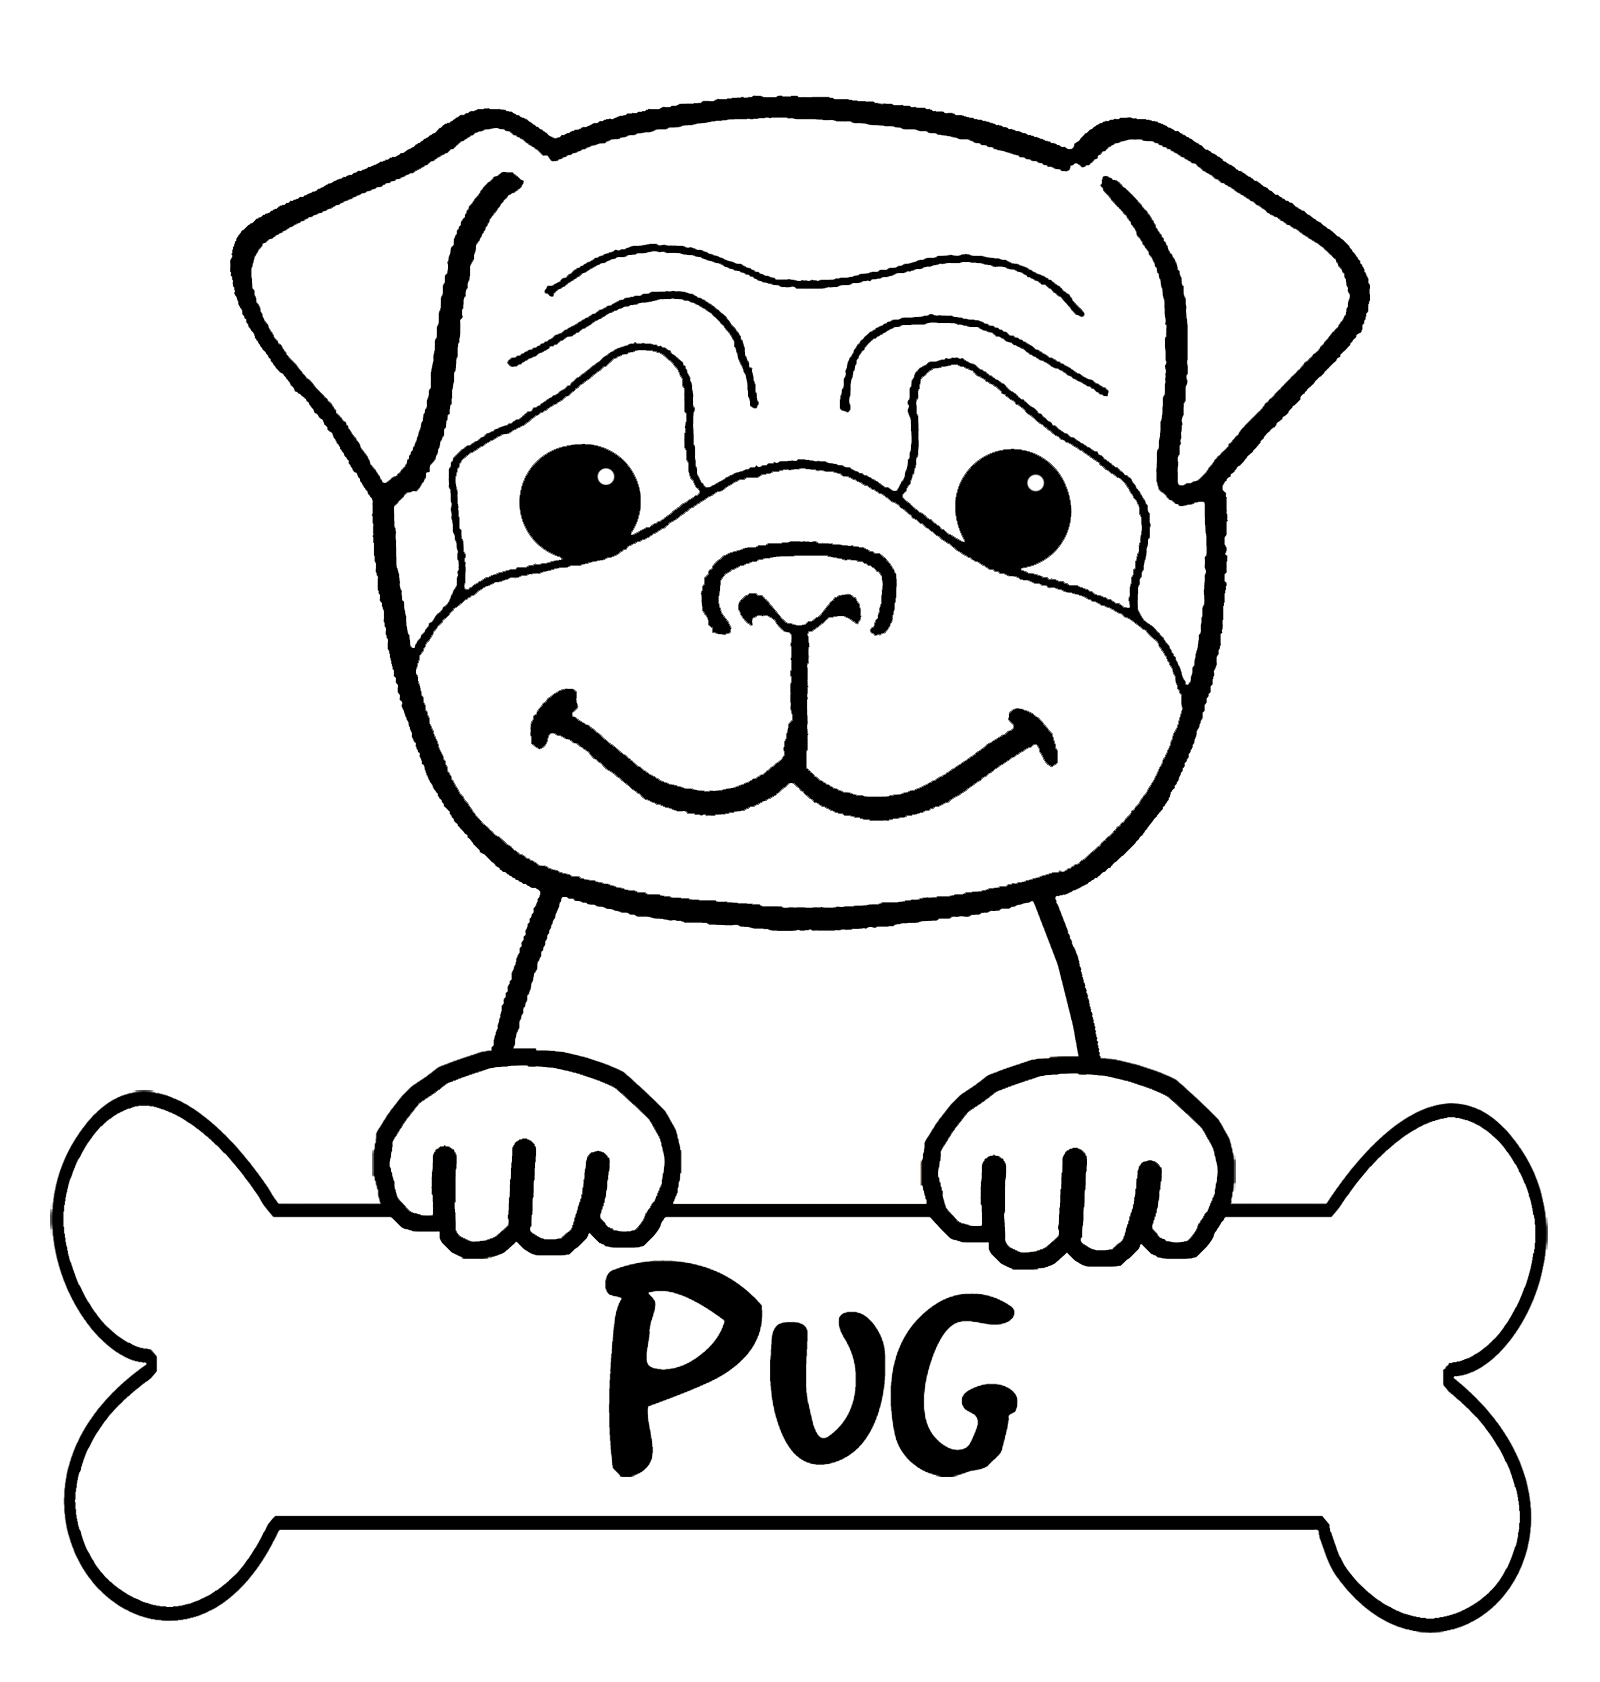 pugs coloring pages to print - photo#18